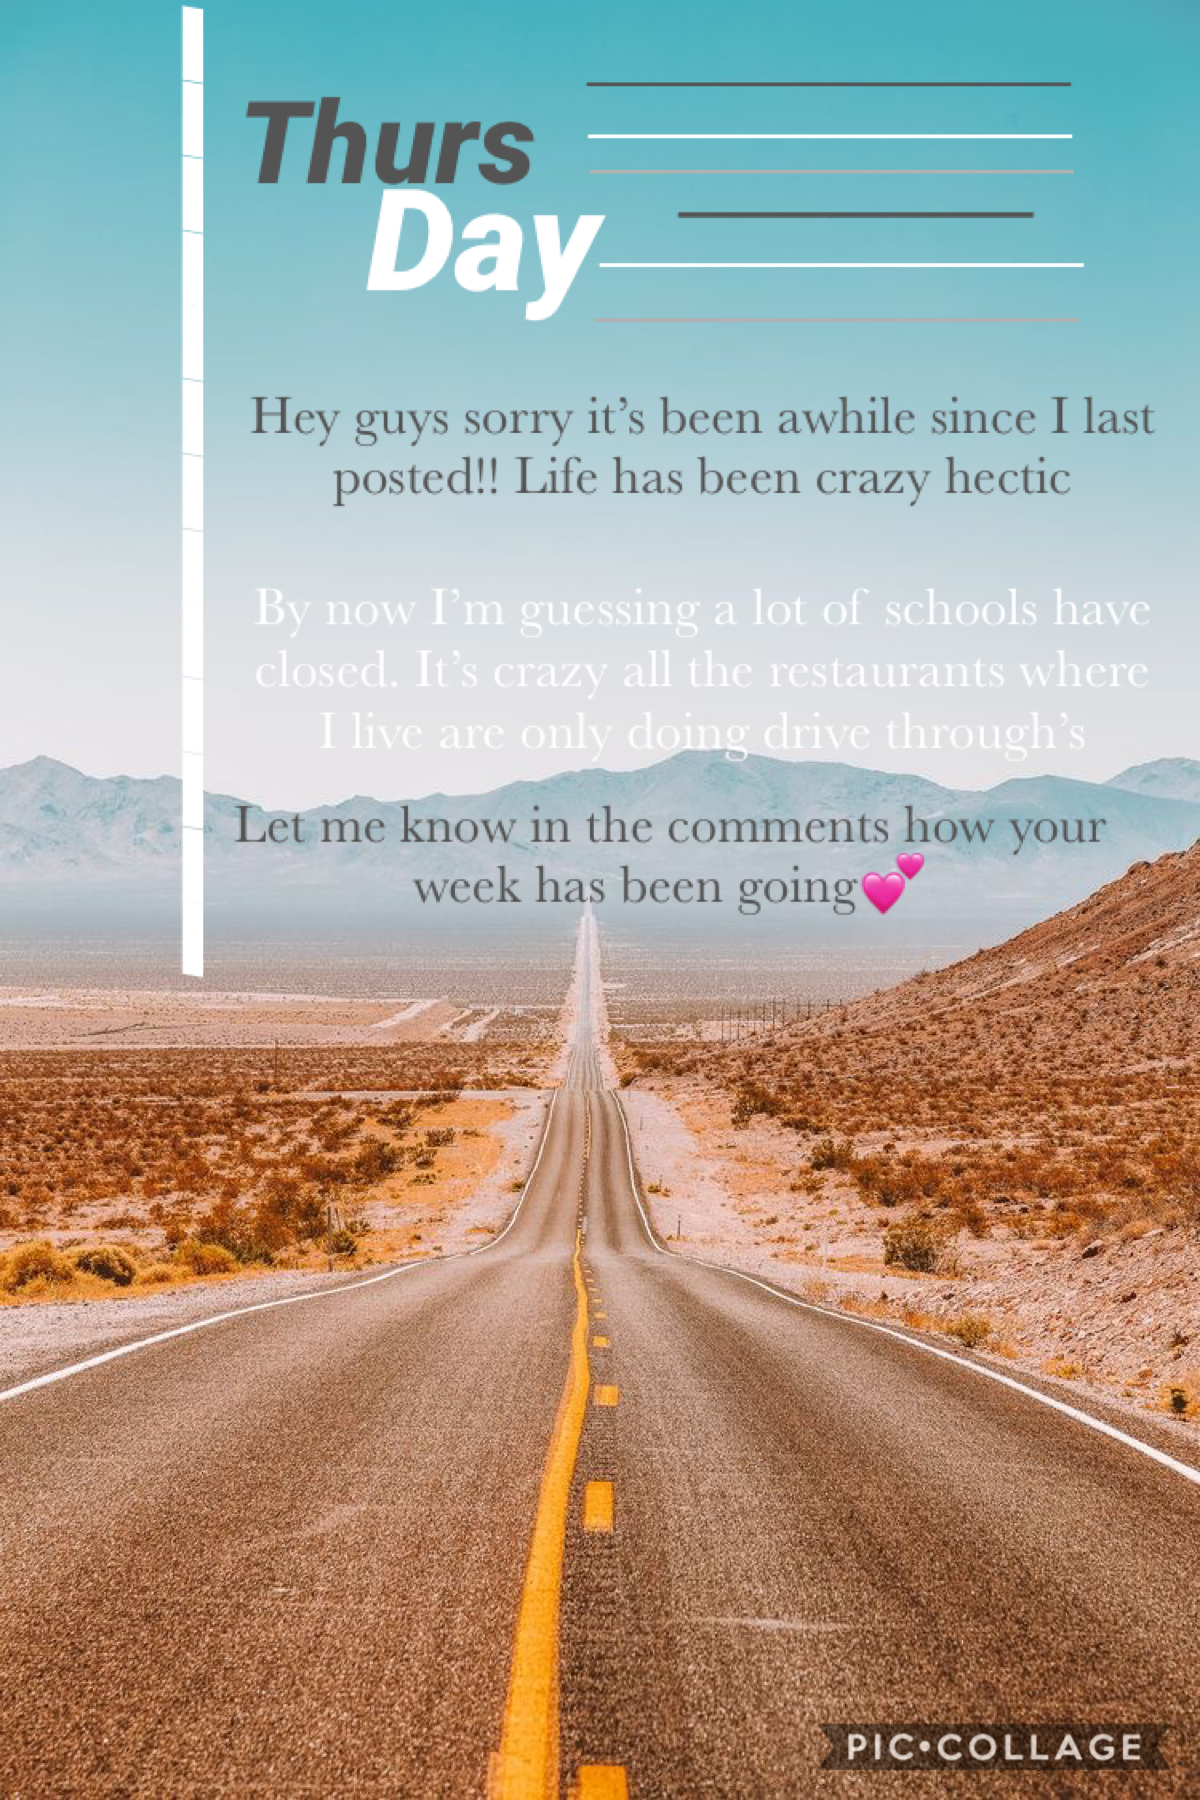 🤍Hey Hey it's SYD sorry about being inactive. Collage filing very soon🙃 Let me know in the comments how your week is going, what you planned for the weekend, Anything. Would love to hear from you guys🤍